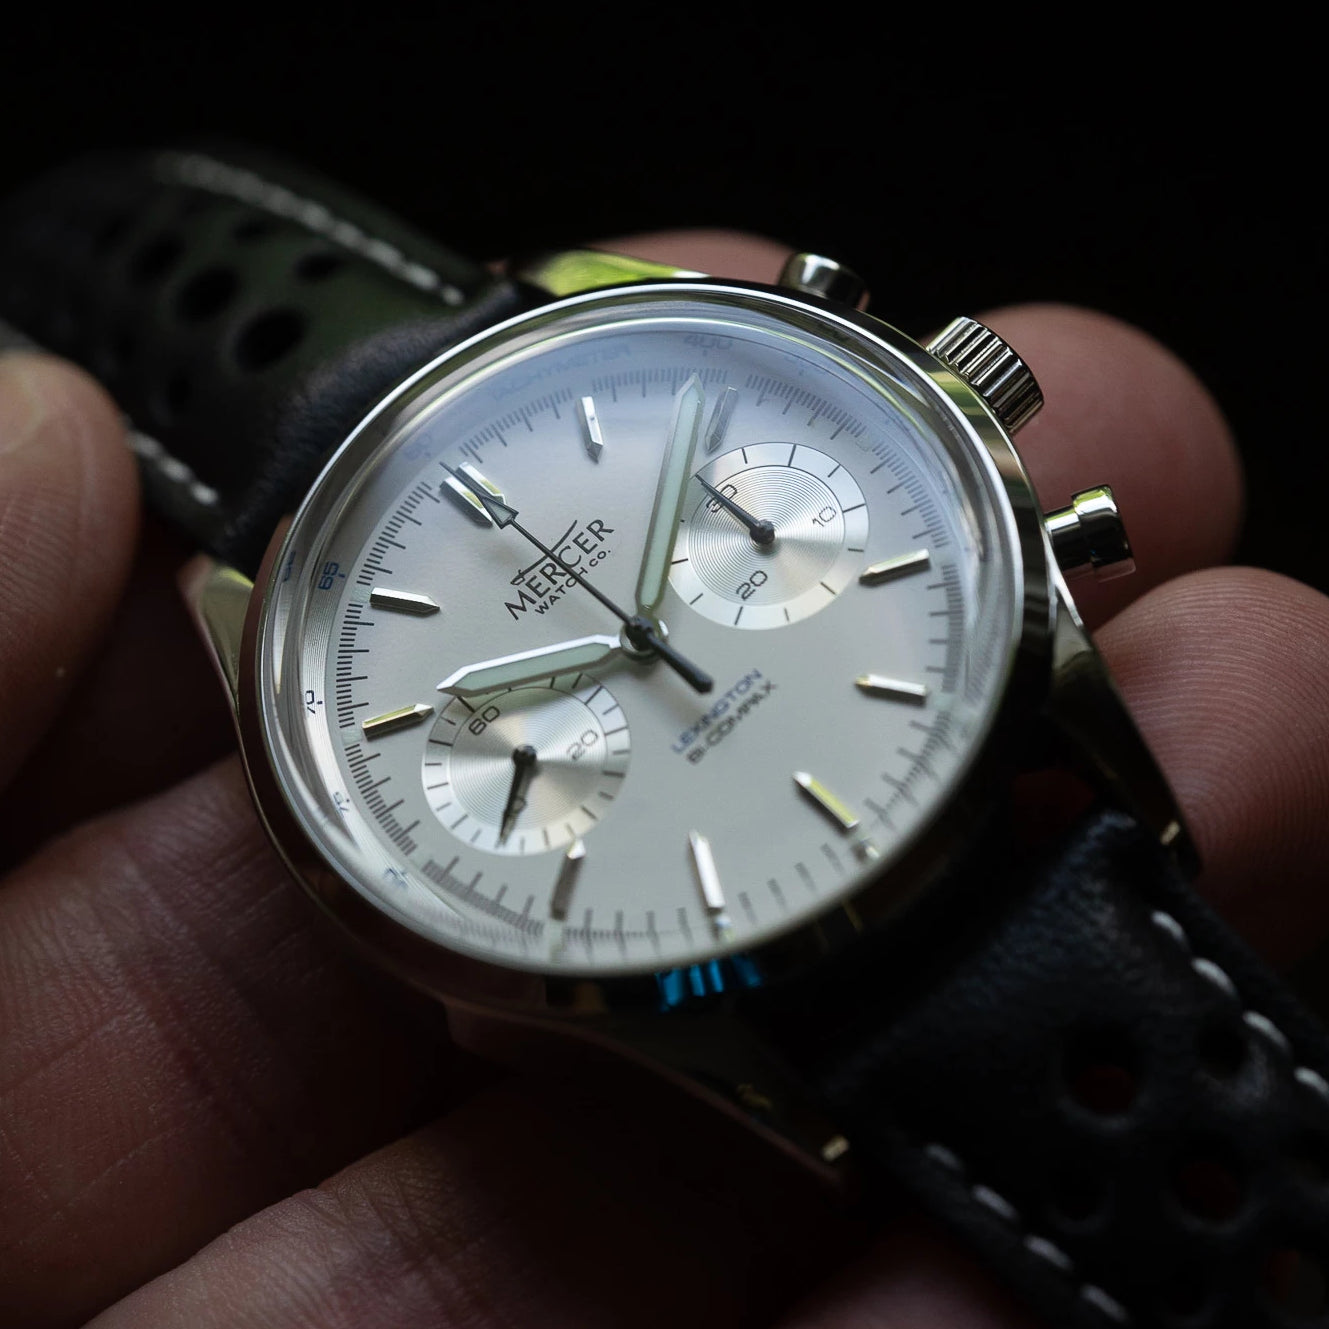 Lexington chronograph - white/silver